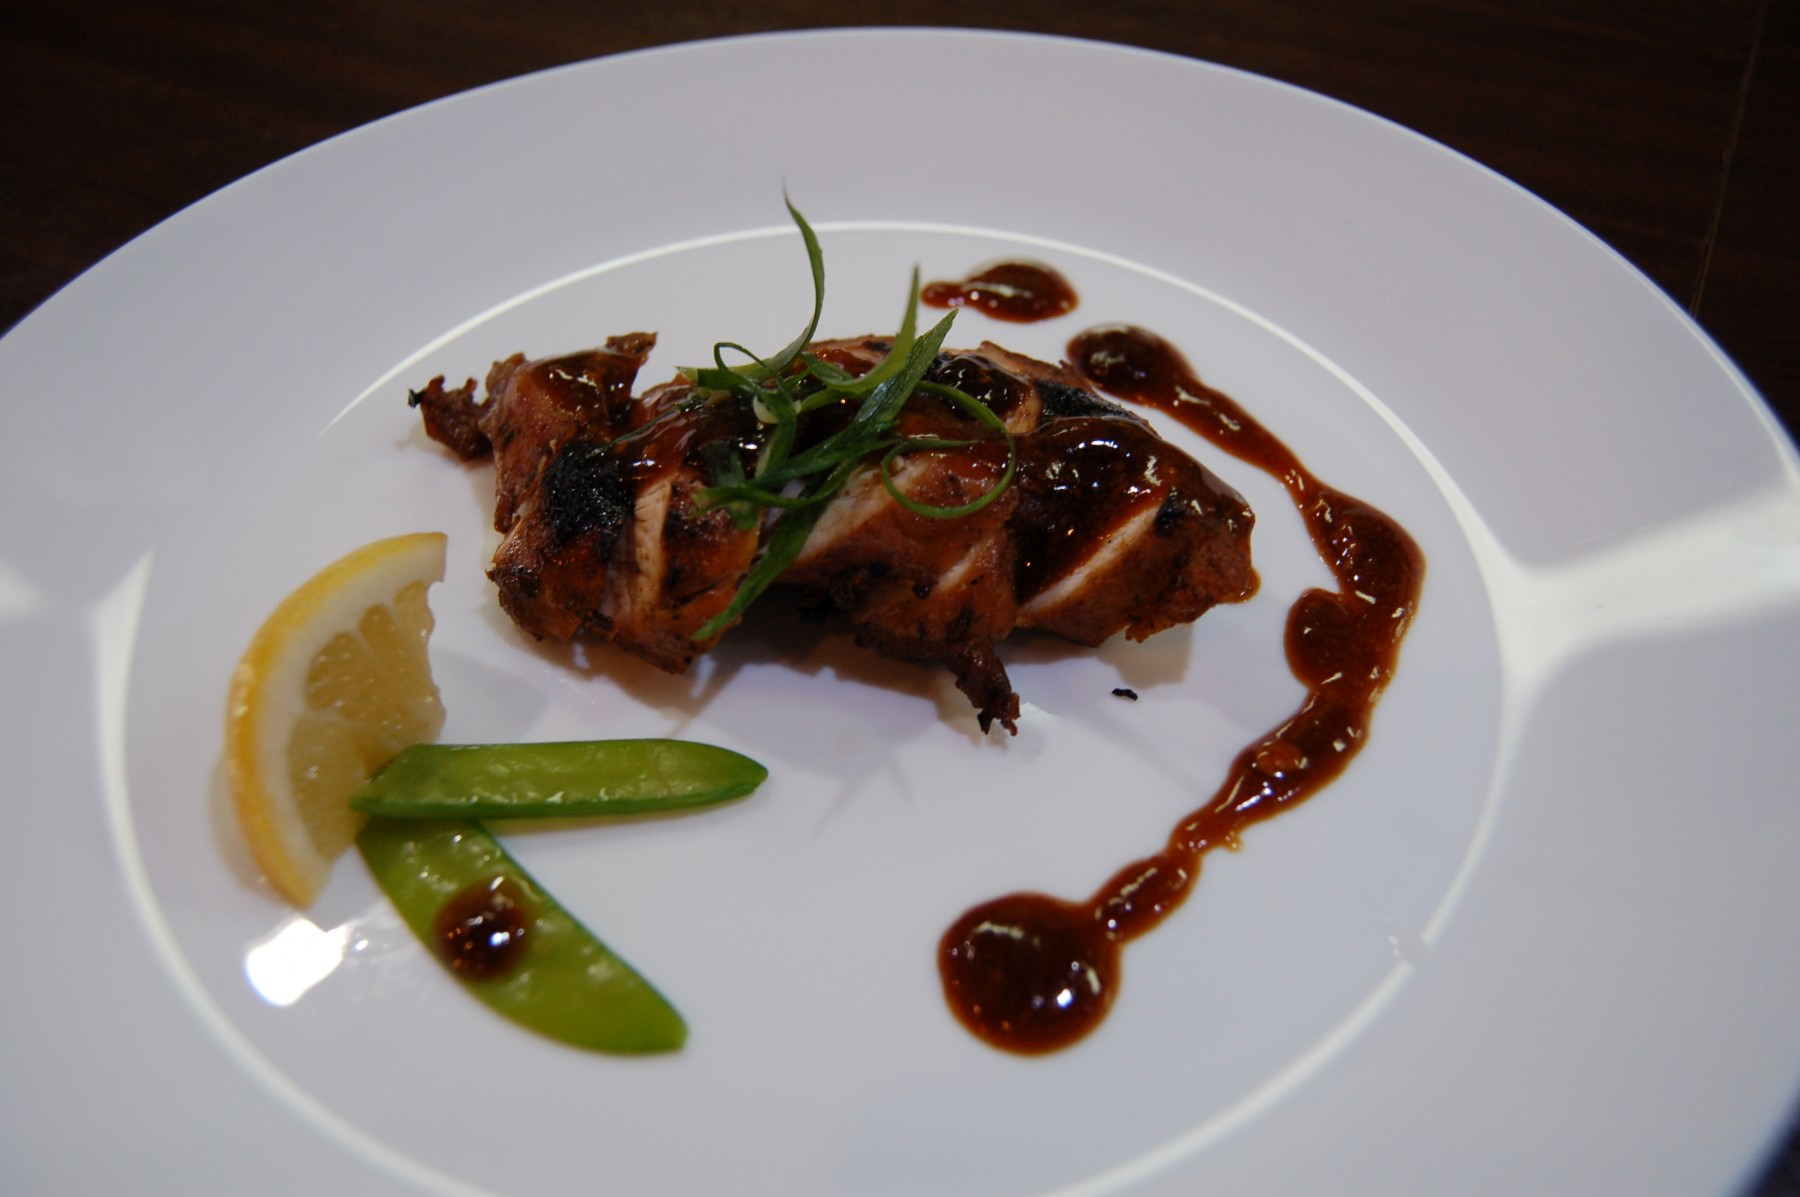 Roasted Chicken with demiglace sauce (4207)